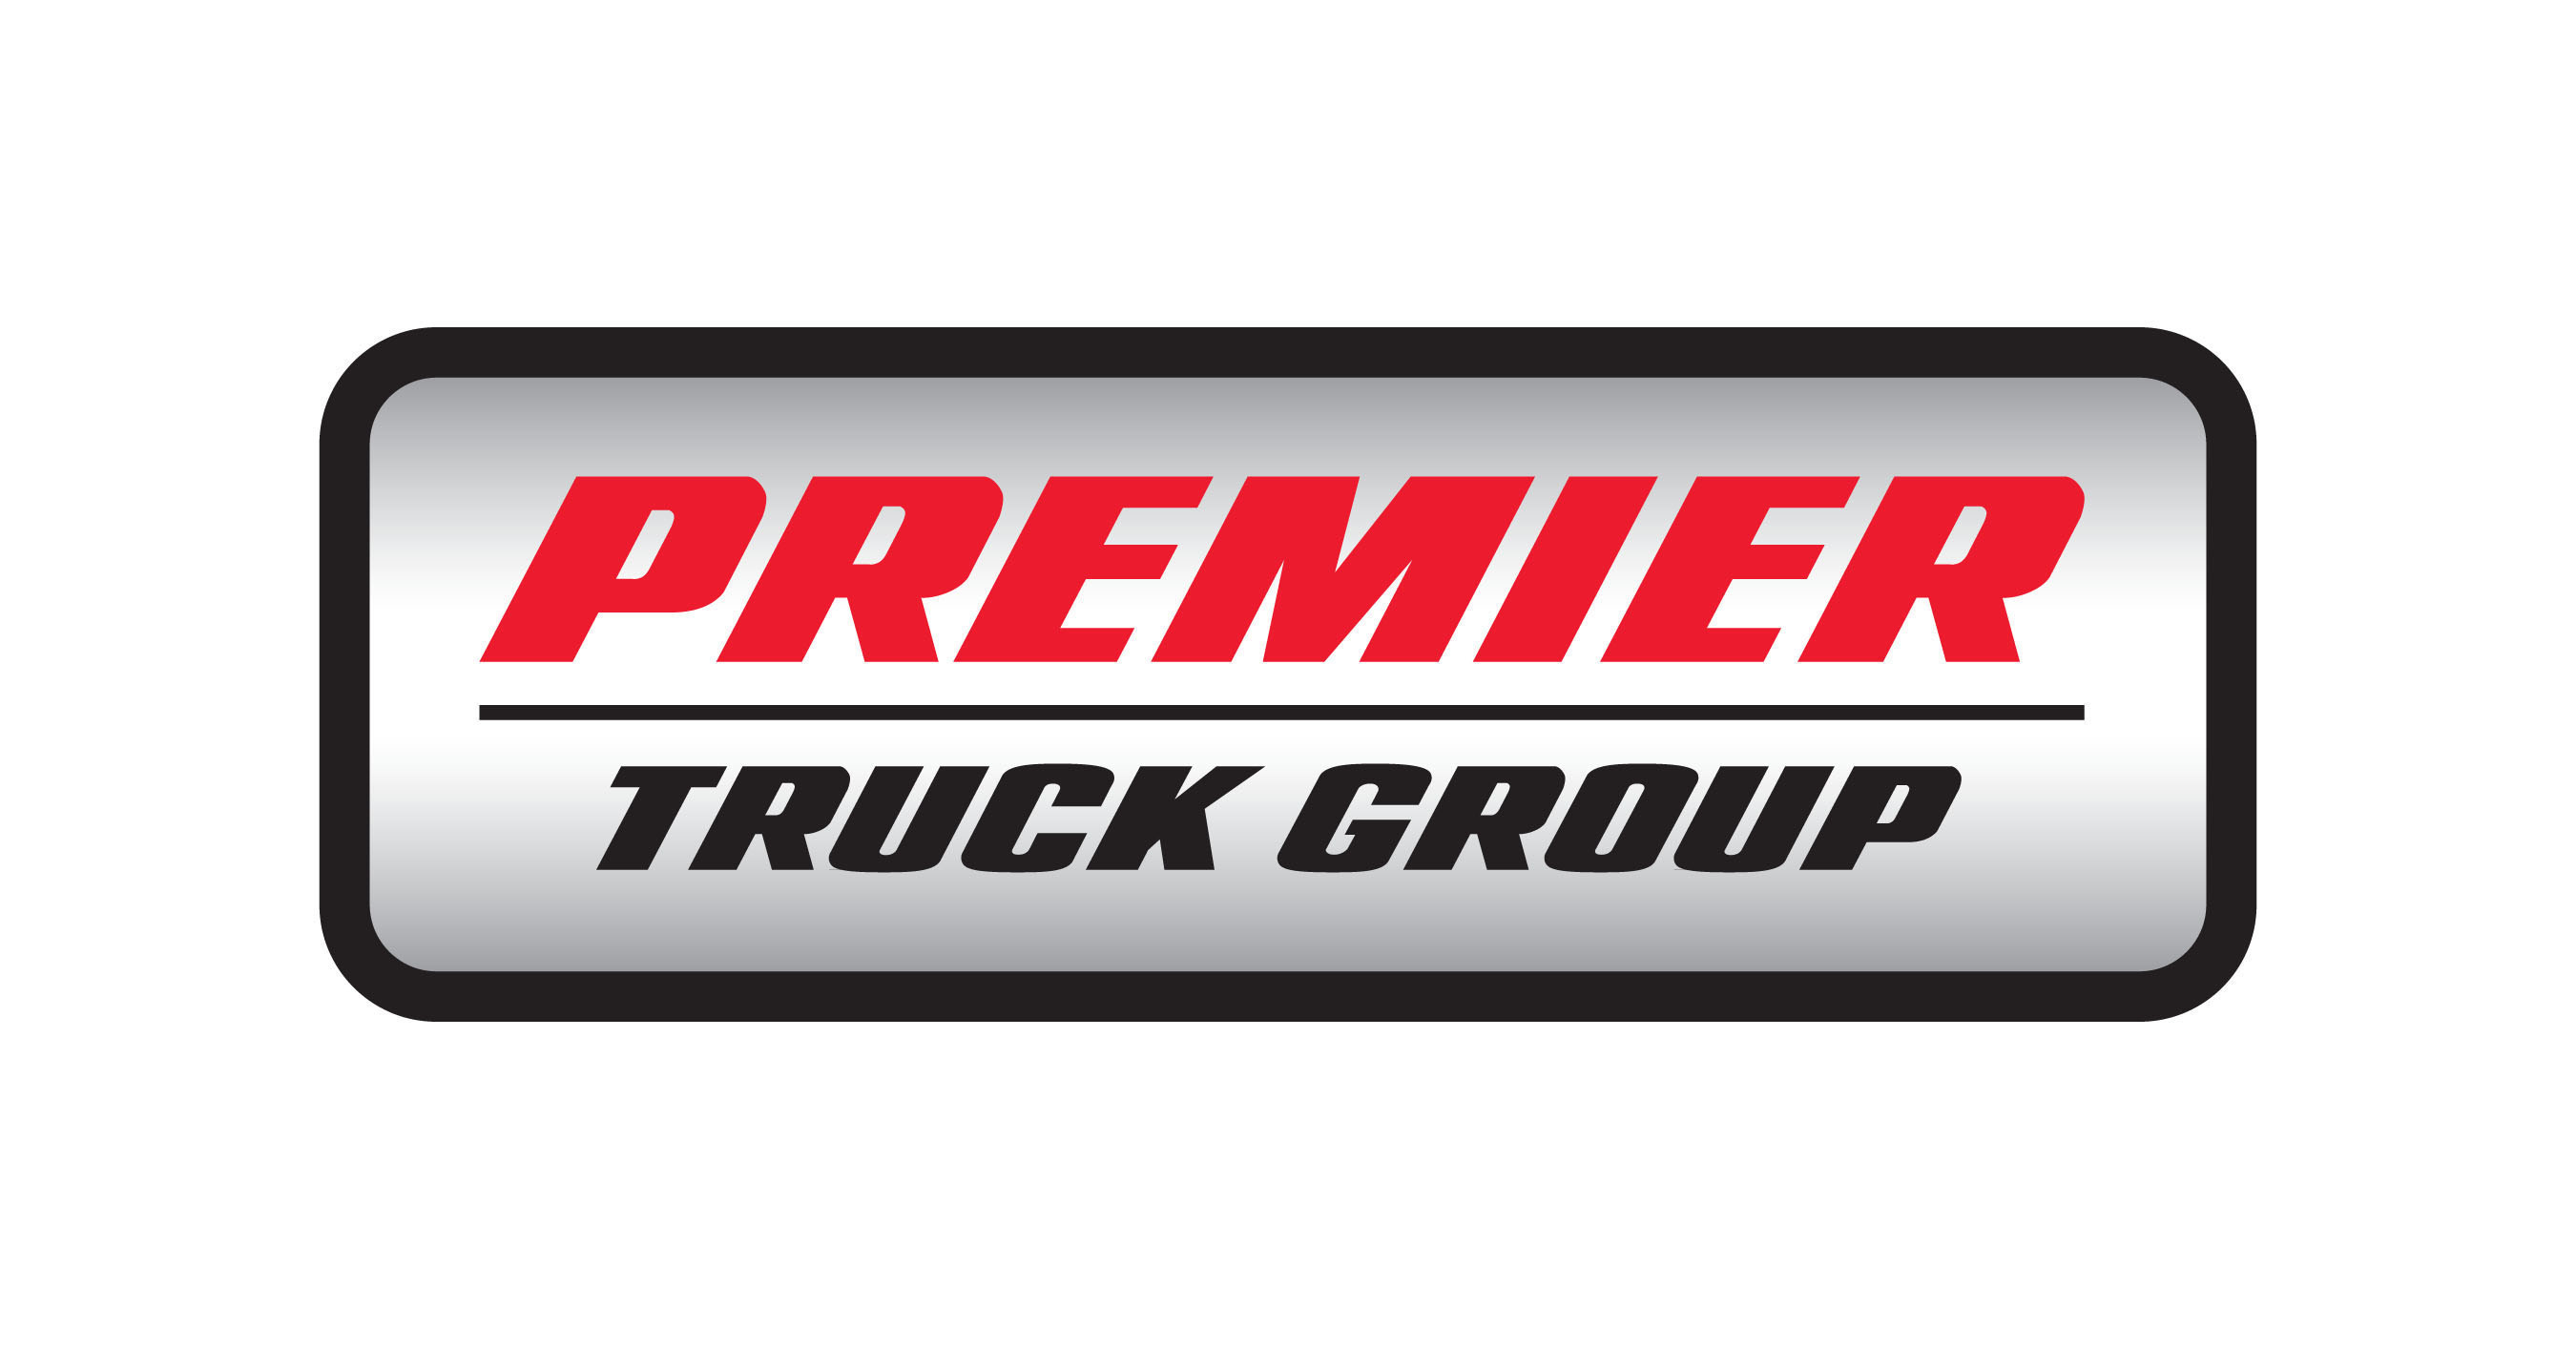 BLOOMFIELD HILLS, Mich., March 4, 2021 /PRNewswire/ -- Penske Automotive Group, Inc. (NYSE: PAG), a diversified international transportation services company, announced today that it has entered into an agreement to acquire Kansas City Freightliner (